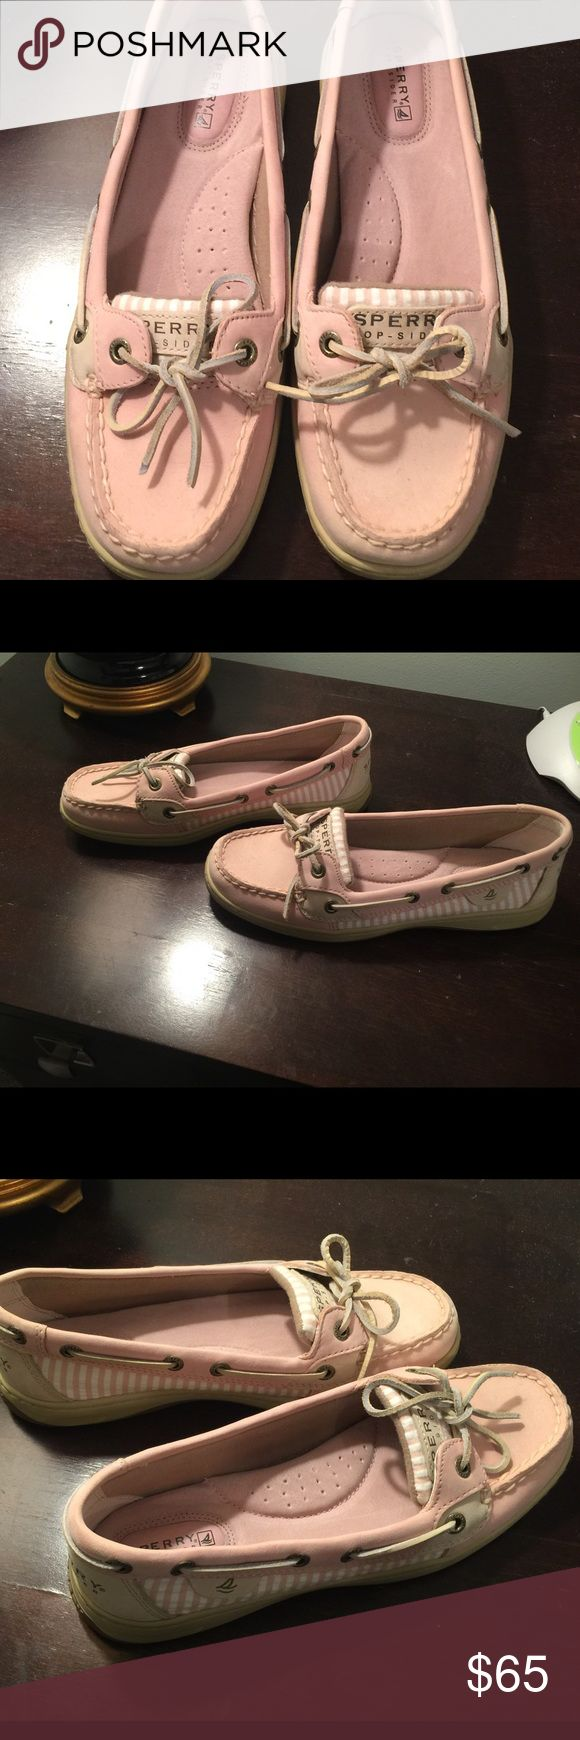 Ballet Pink Sperry Shoes These Ballet Pink Sperry Shoes are so darling and so comfy!! They have only been worn twice and are in amazing condition! Sperry Top-Sider Shoes Flats & Loafers